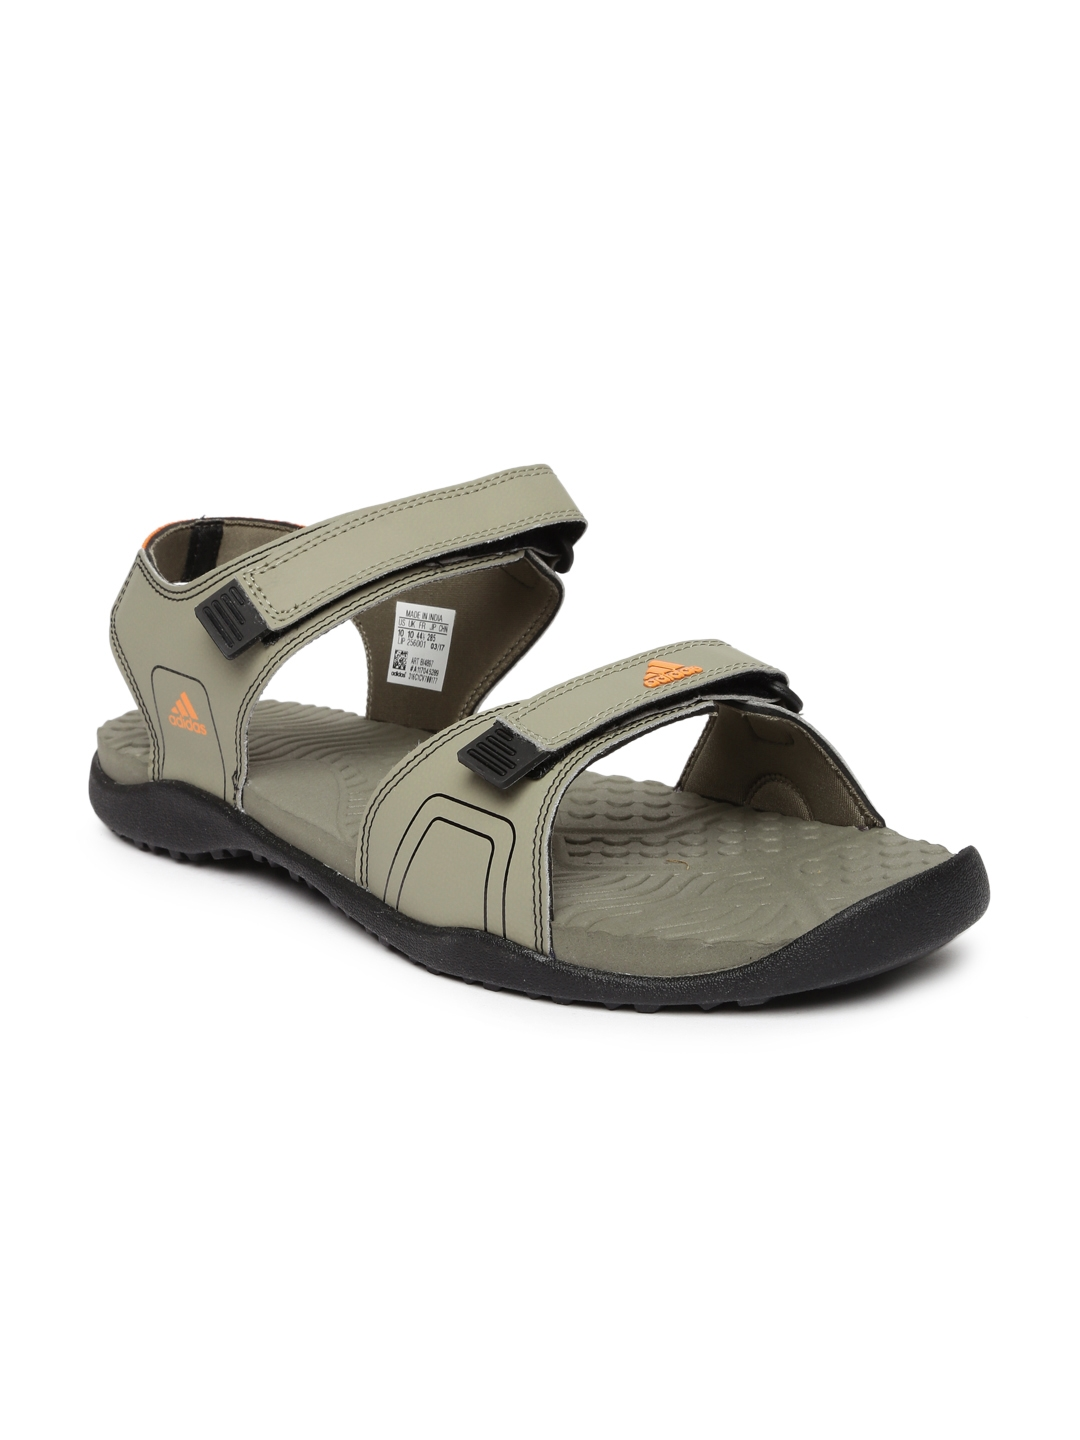 8fe495372bea89 adidas mens sandals online on sale   OFF45% Discounted